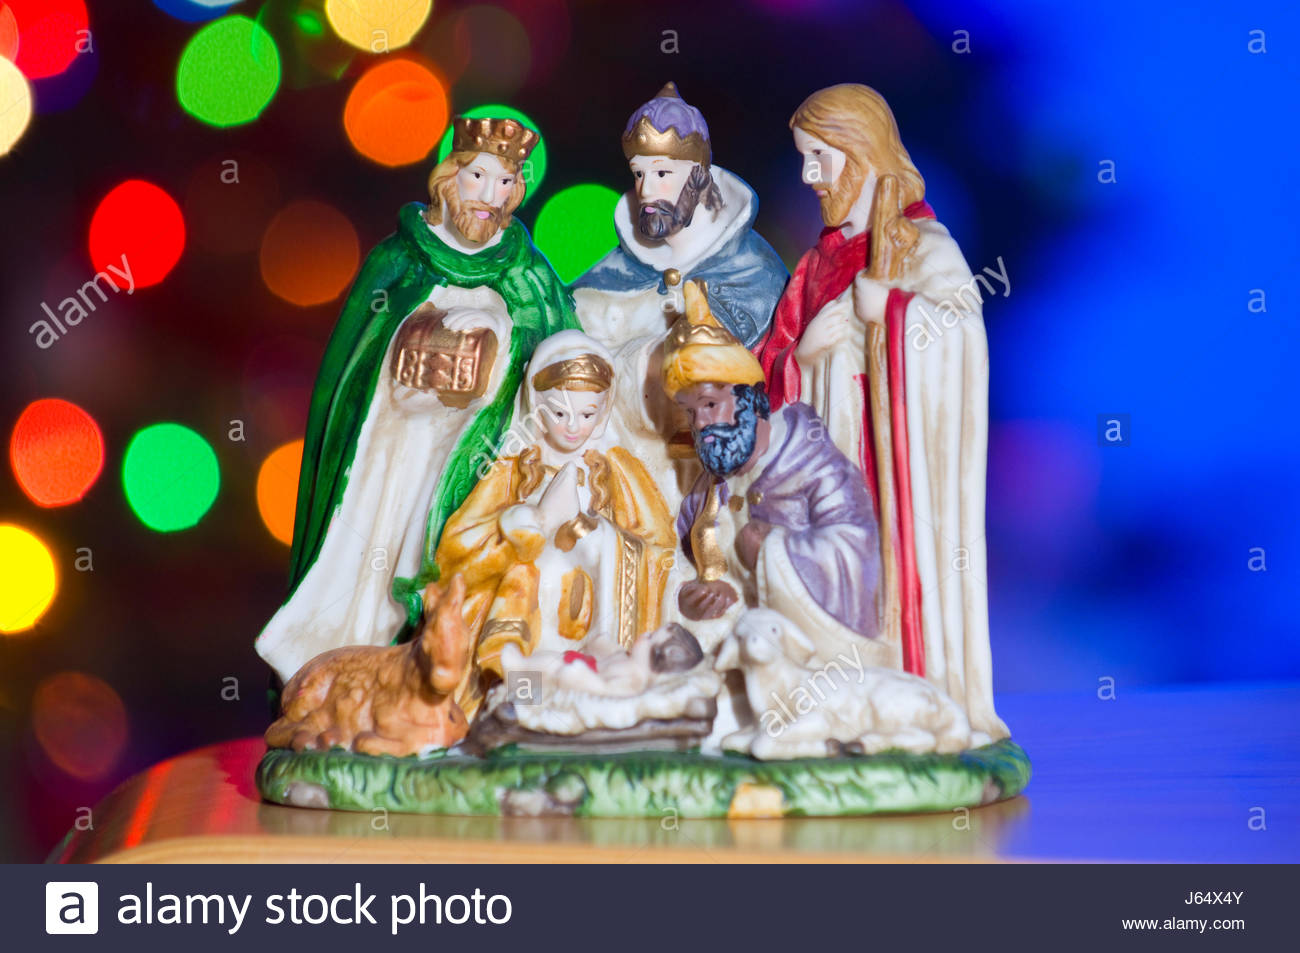 Figurine of the nativity depicting the birth of Jesus Christ with Mary, Joseph and the three wise men.Stock Photo